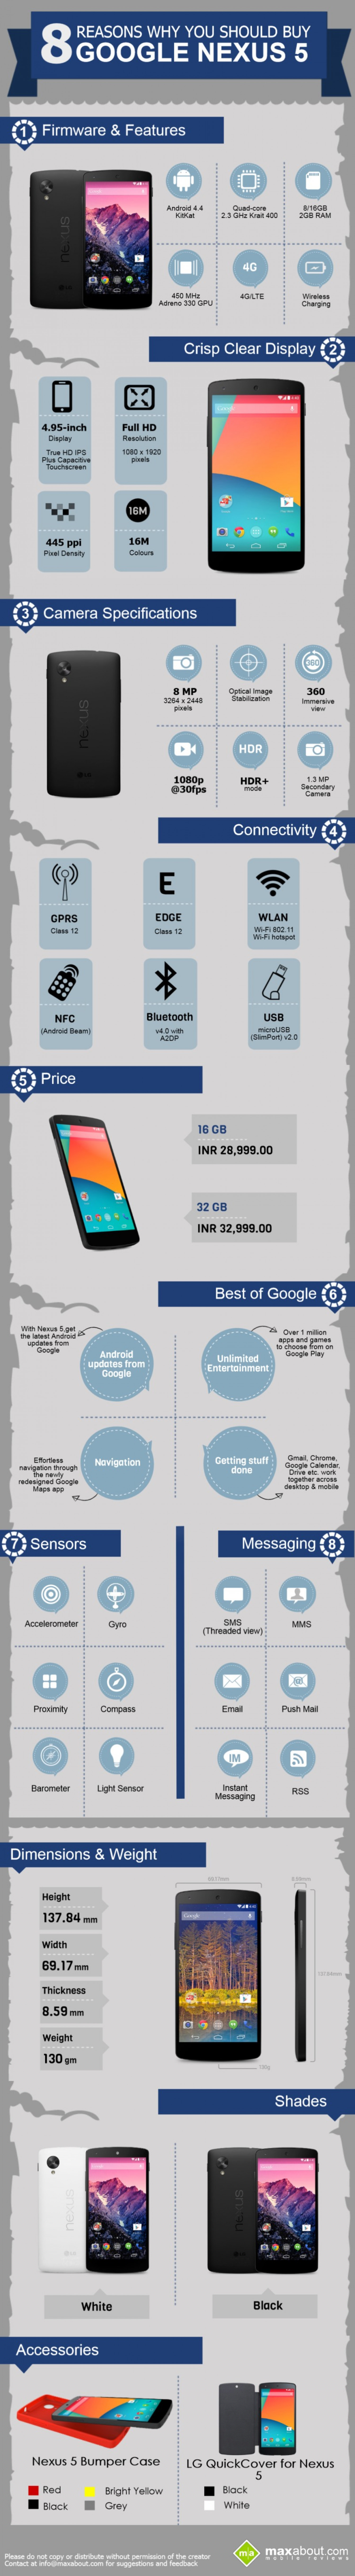 8 Reasons Why You Should Buy Google Nexus 5 Infographic